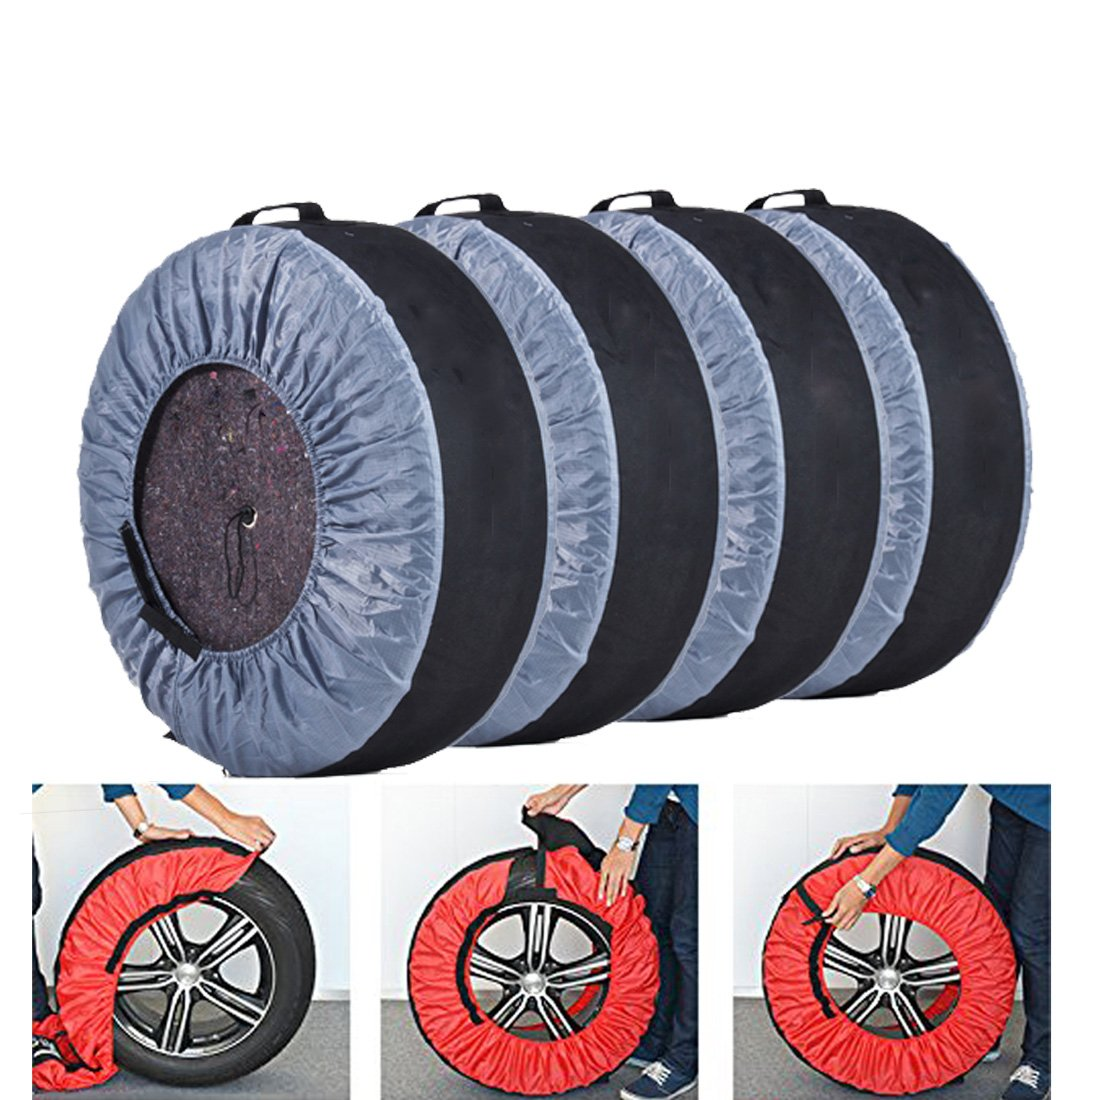 FLR Tire Tote Adjustable Waterproof Grey 30in Tire Covers Bags Seasonal Tire Storage Bag for Car Off Road Truck Tire Totes Set of 4 by FLR (Image #5)